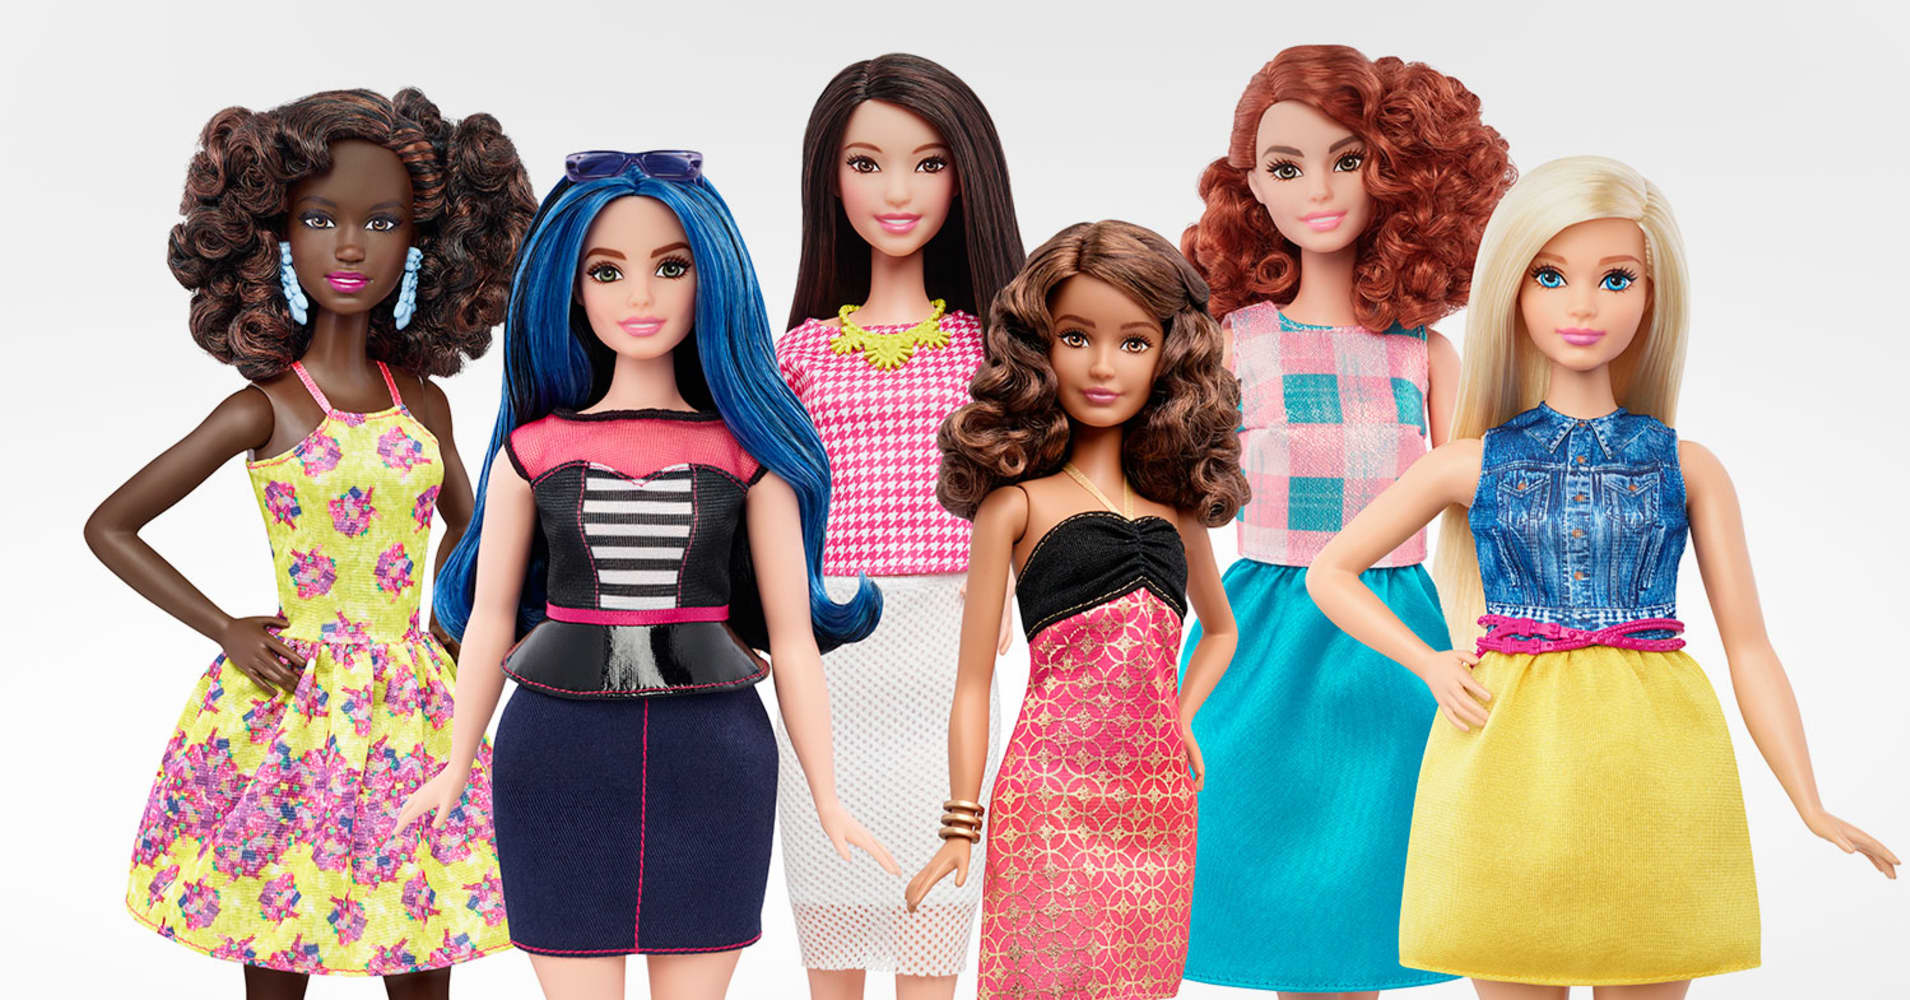 Barbie Gets Real With Latest Makeover New Body Types